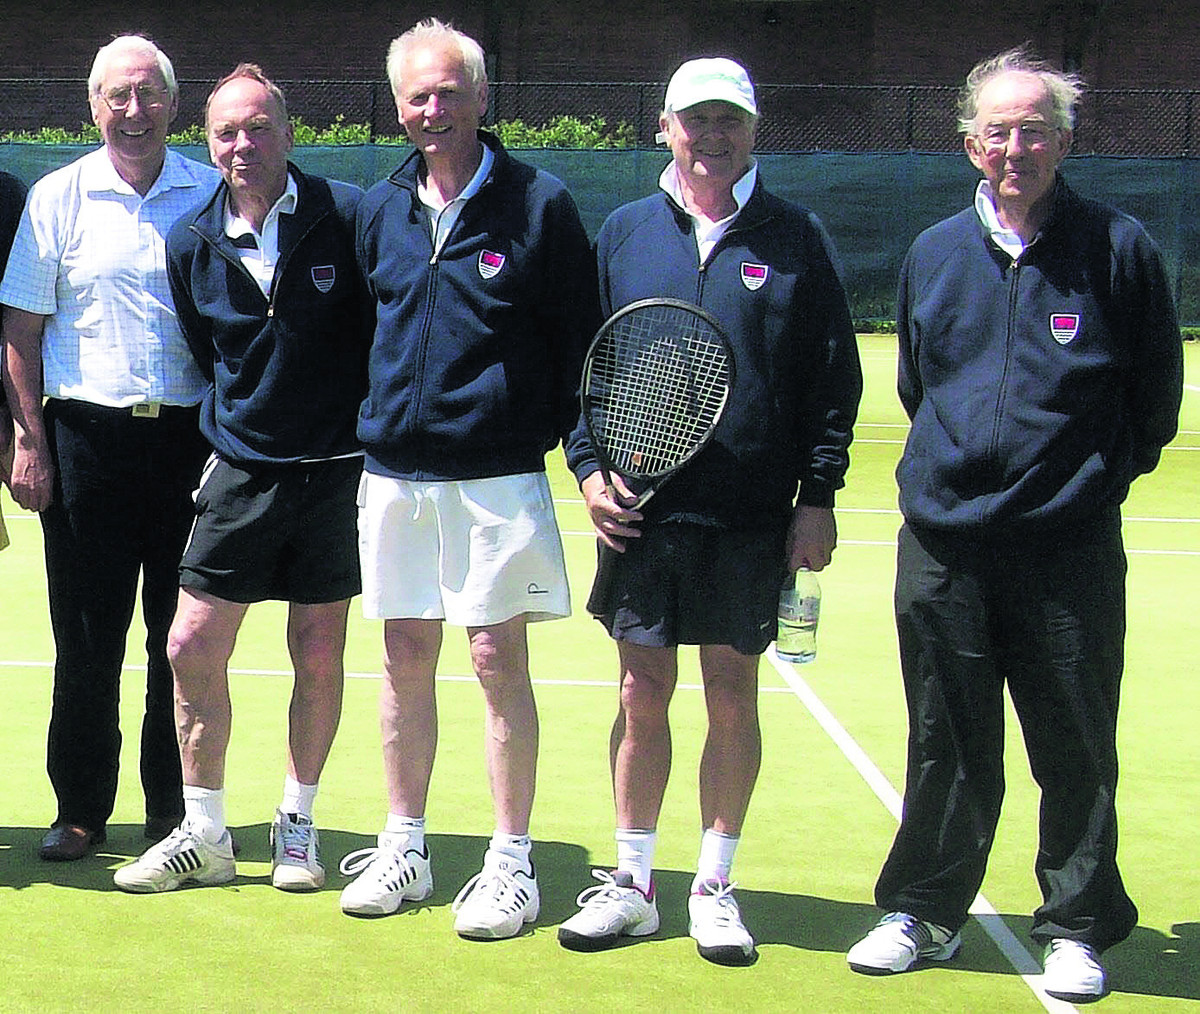 Pictured after their success against Wiltshire are (from left): Mike Morgan, Ian Jelfs, Roger Selby (capt), Tony Gale and Jon Dilworth